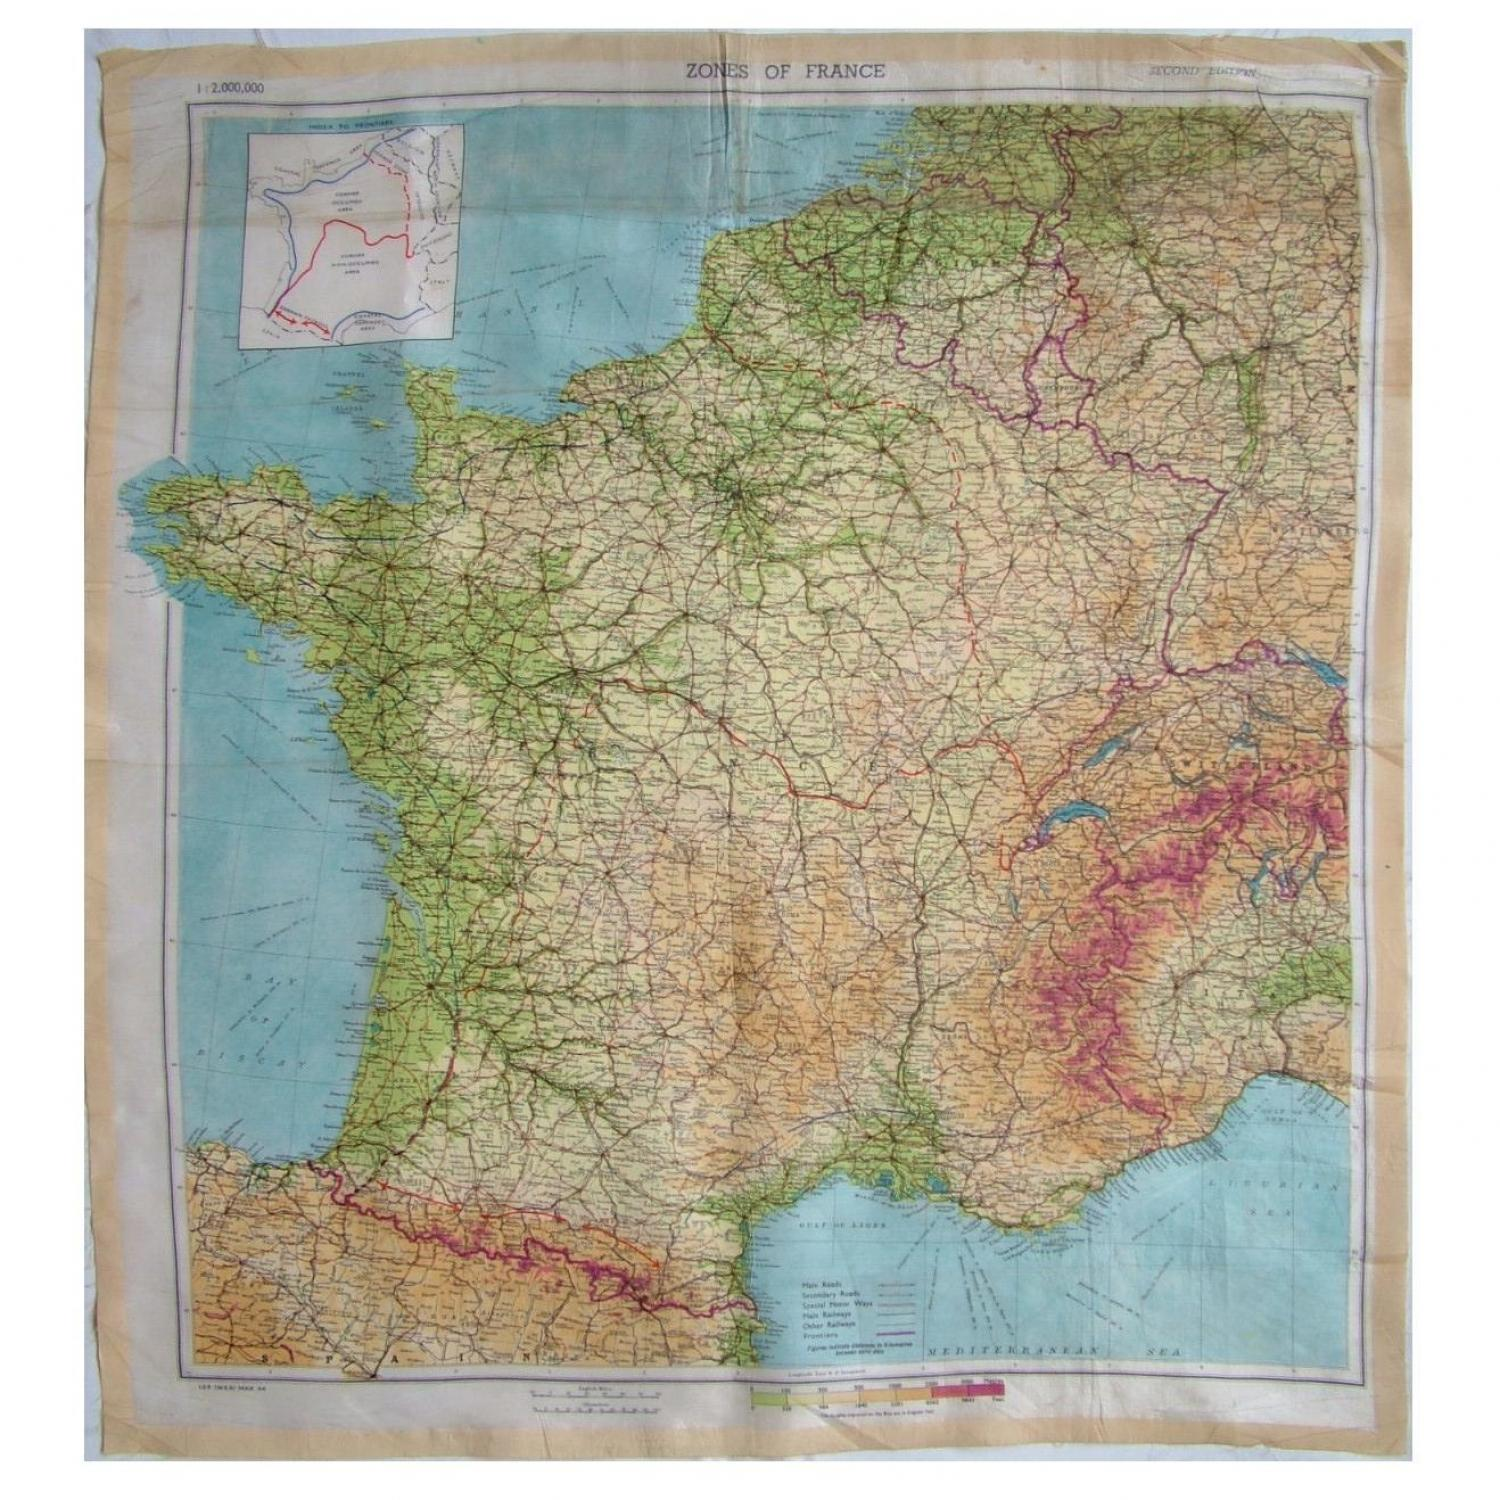 Map Of France Zones.Raf Escape Evasion Map Zones Of France In Escape Maps